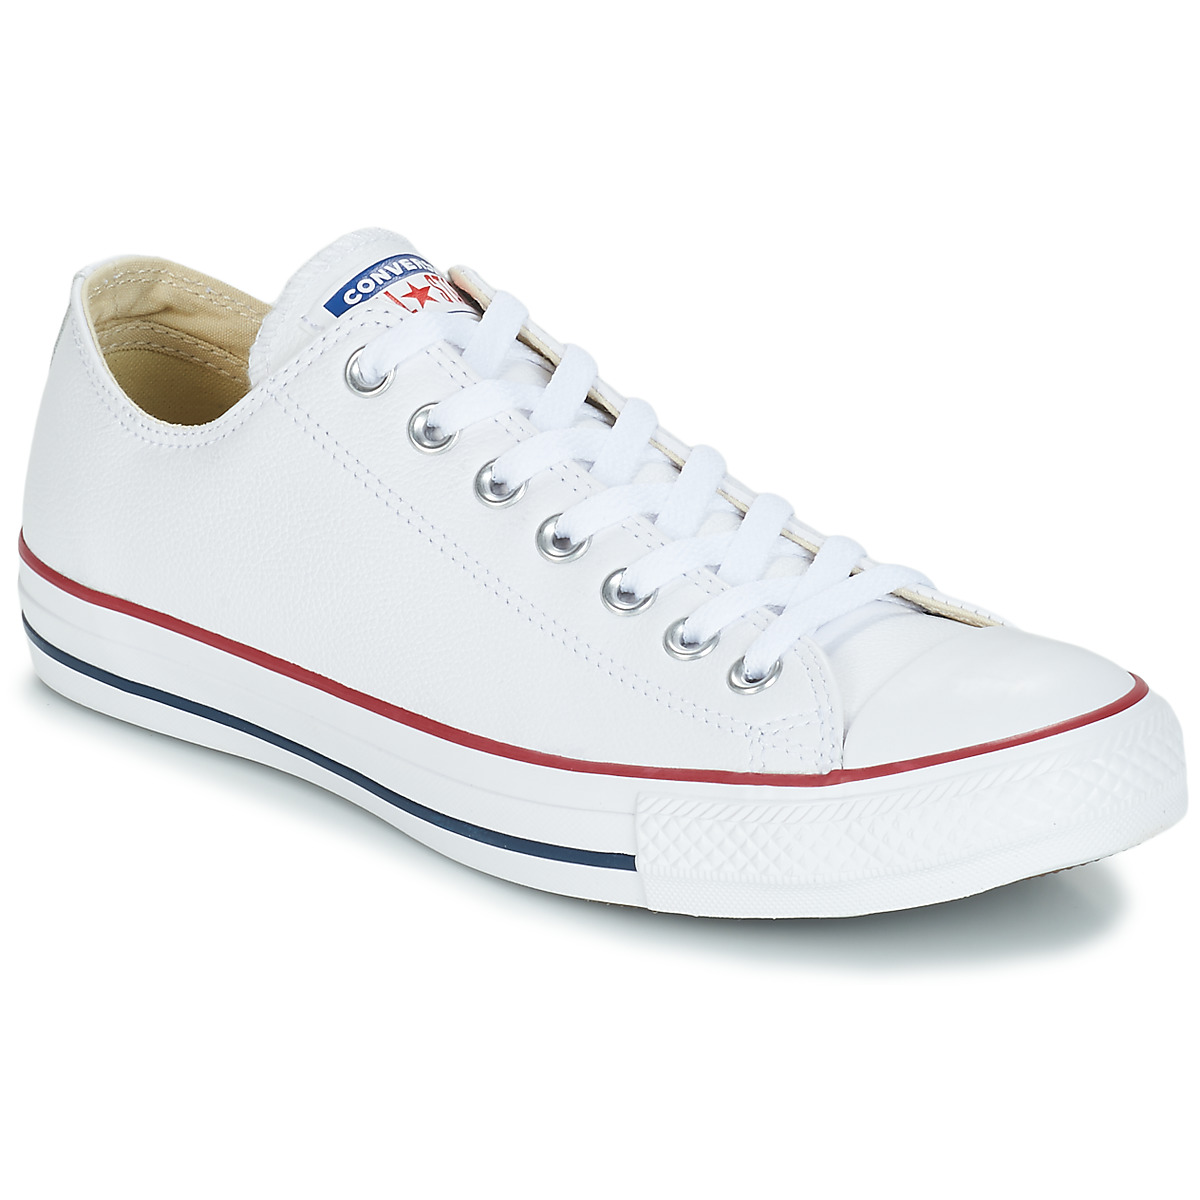 Converse ALL STAR LEATHER OX White